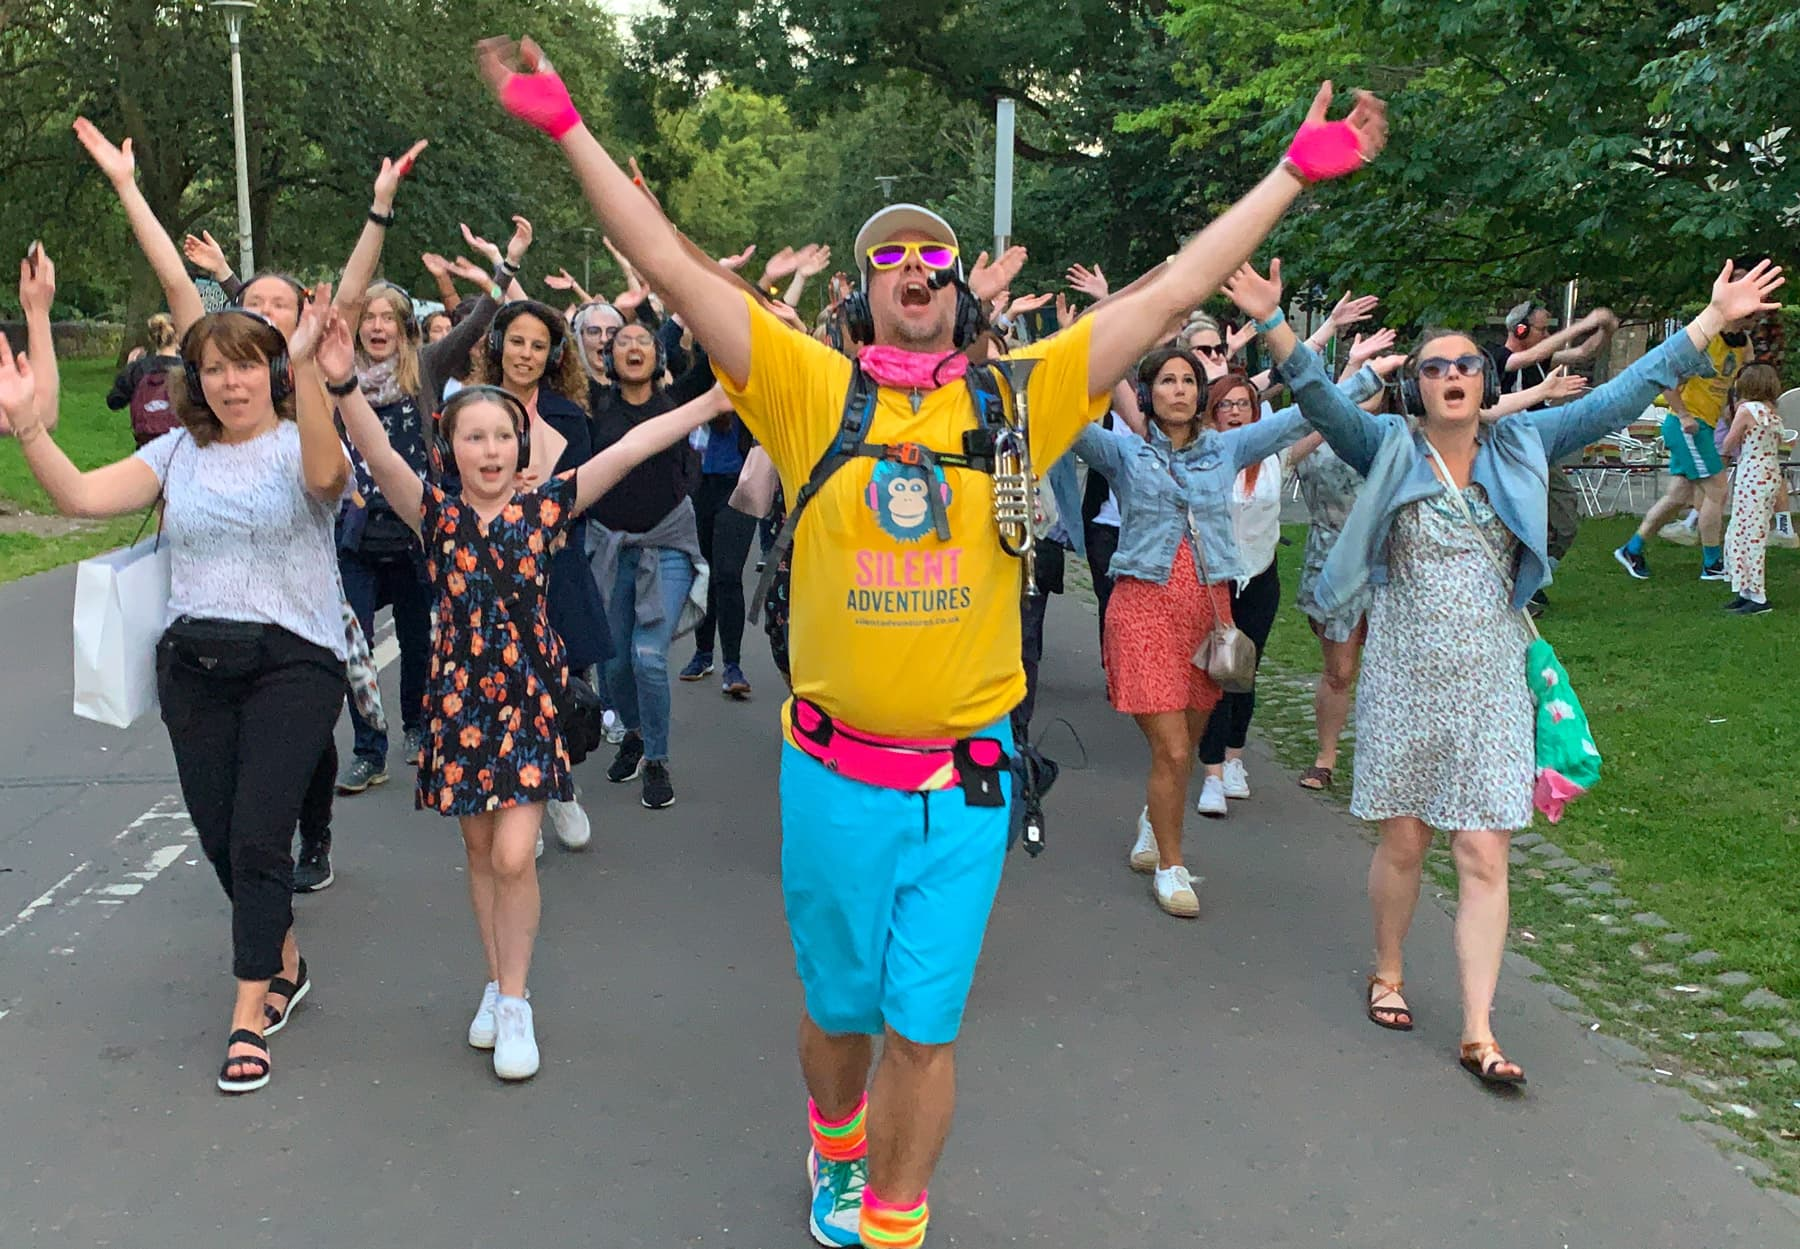 Silent disco Walking Tour in London